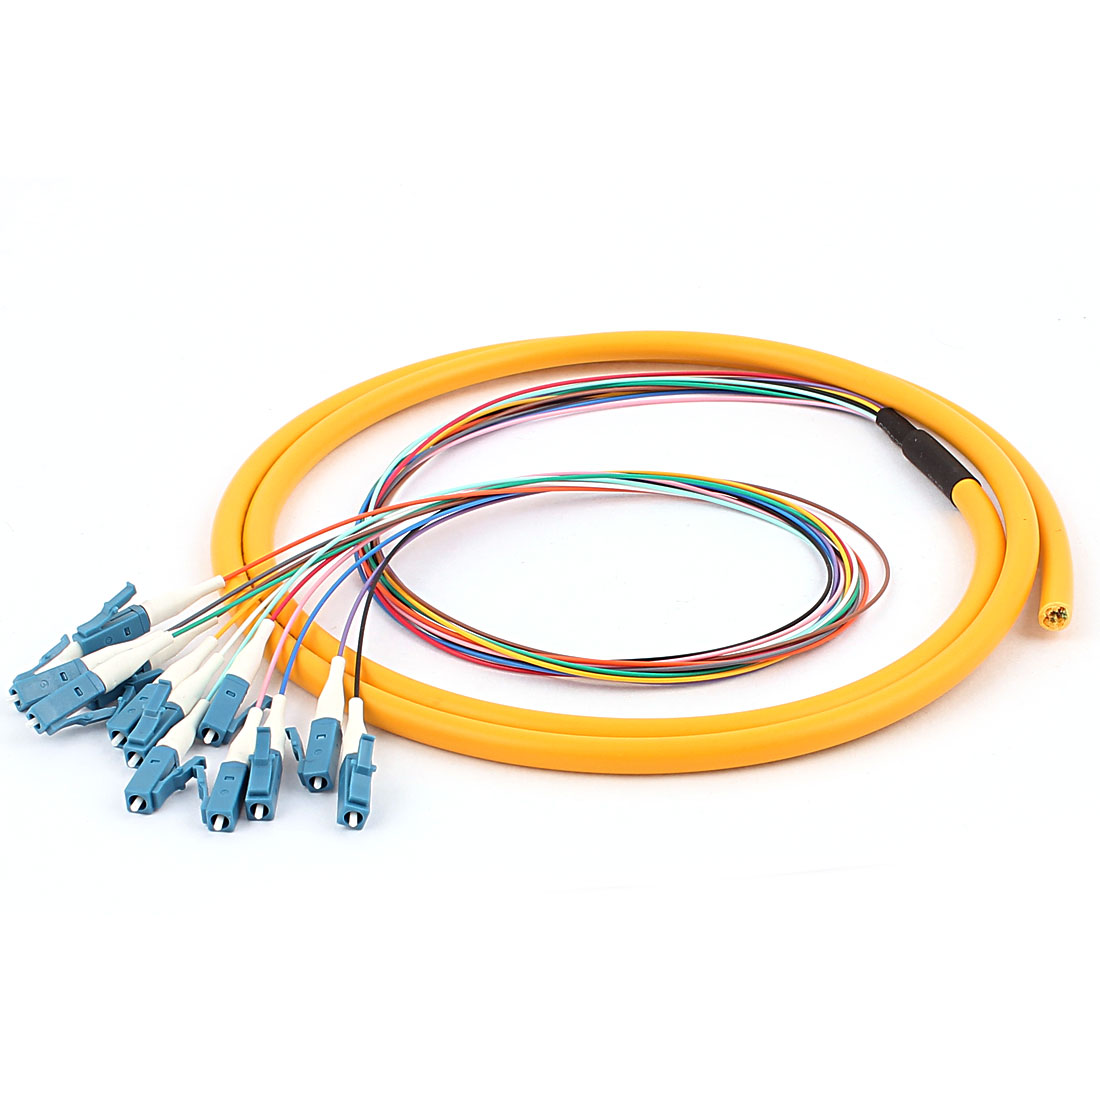 1.5M 4.9Ft Optic Pigtail SM Singlemode 12 LC/UPC Loose Fiber Cable